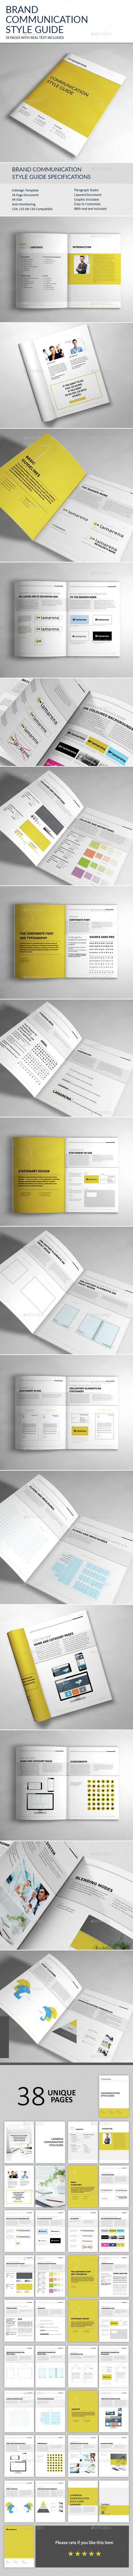 Communication Style Guide Template InDesign INDD. Download here: http://graphicriver.net/item/communication-style-guide/15022300?ref=ksioks